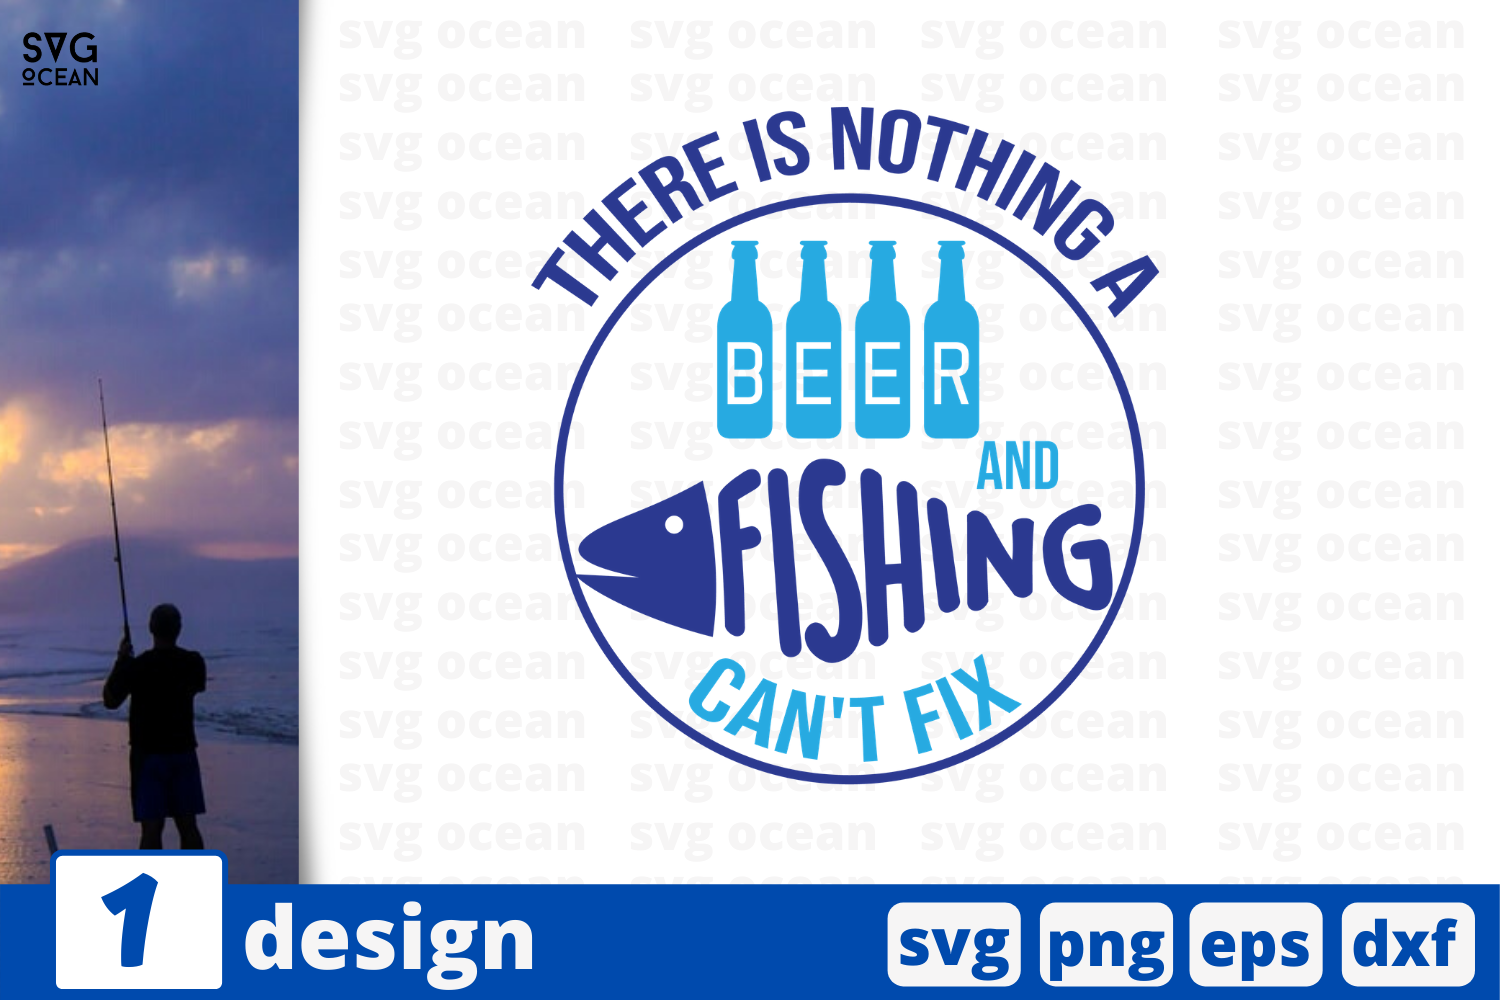 Download 1 There Is Nothing A Beer And Fishing Svg Bundle Quotes Cricut Svg By Svgocean Thehungryjpeg Com